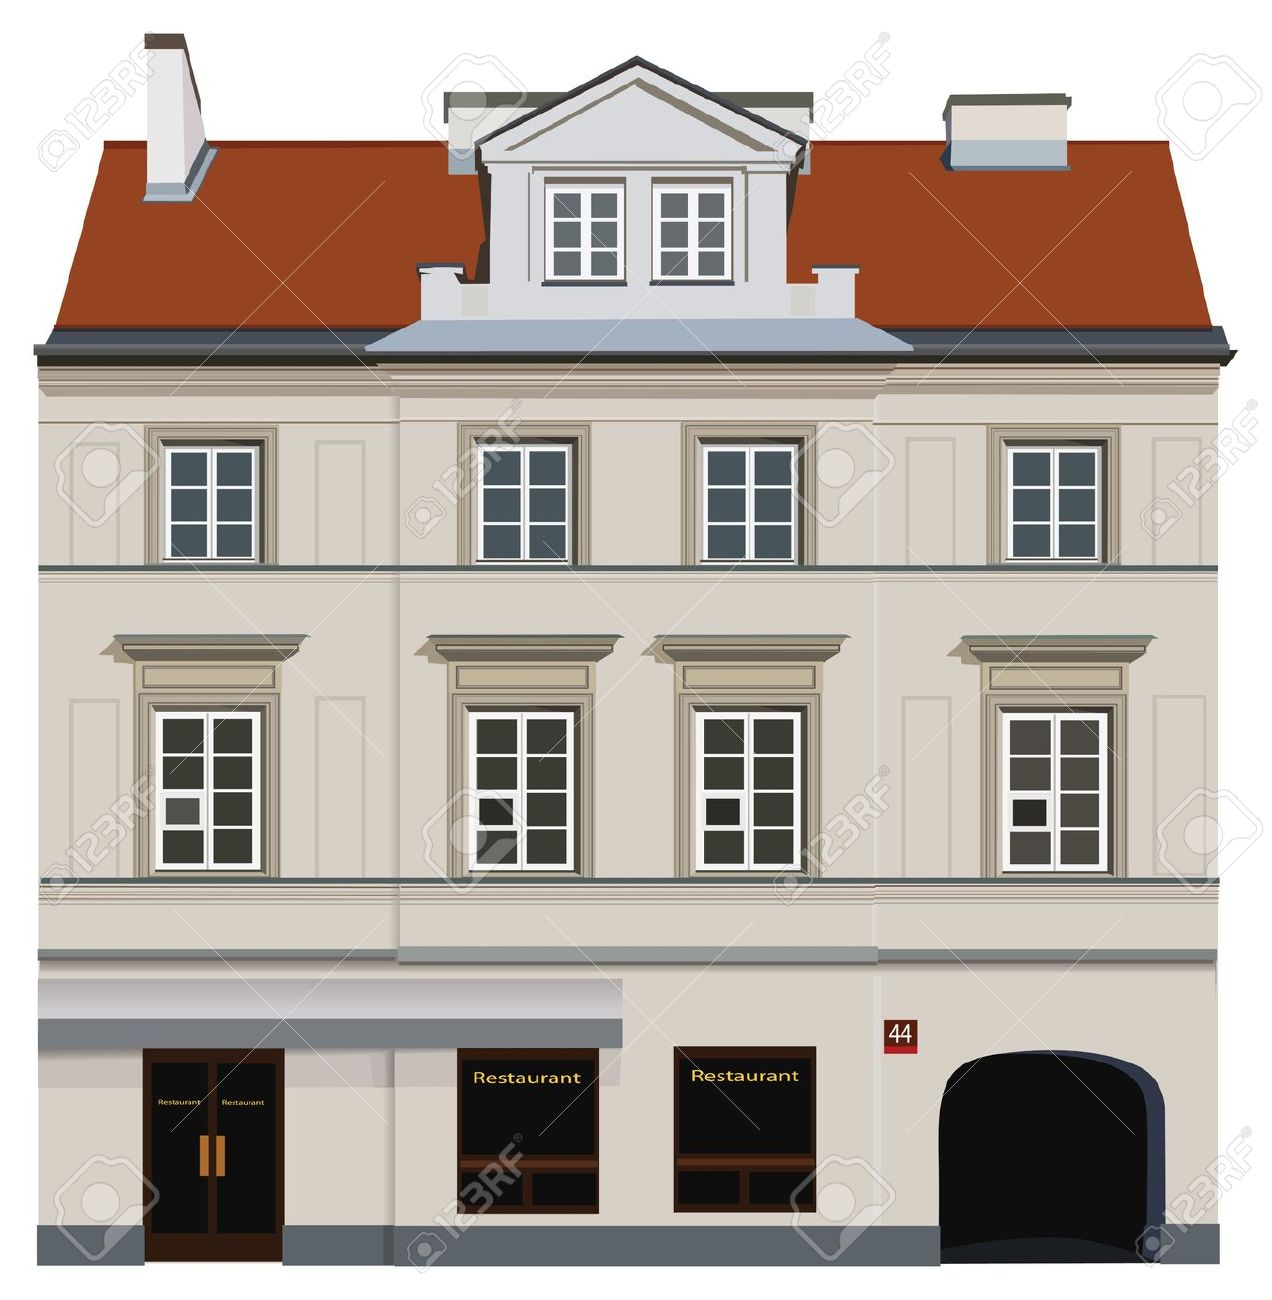 Facade Of Building From Warsaw. Famous Nowy Swiat Street. Royalty.